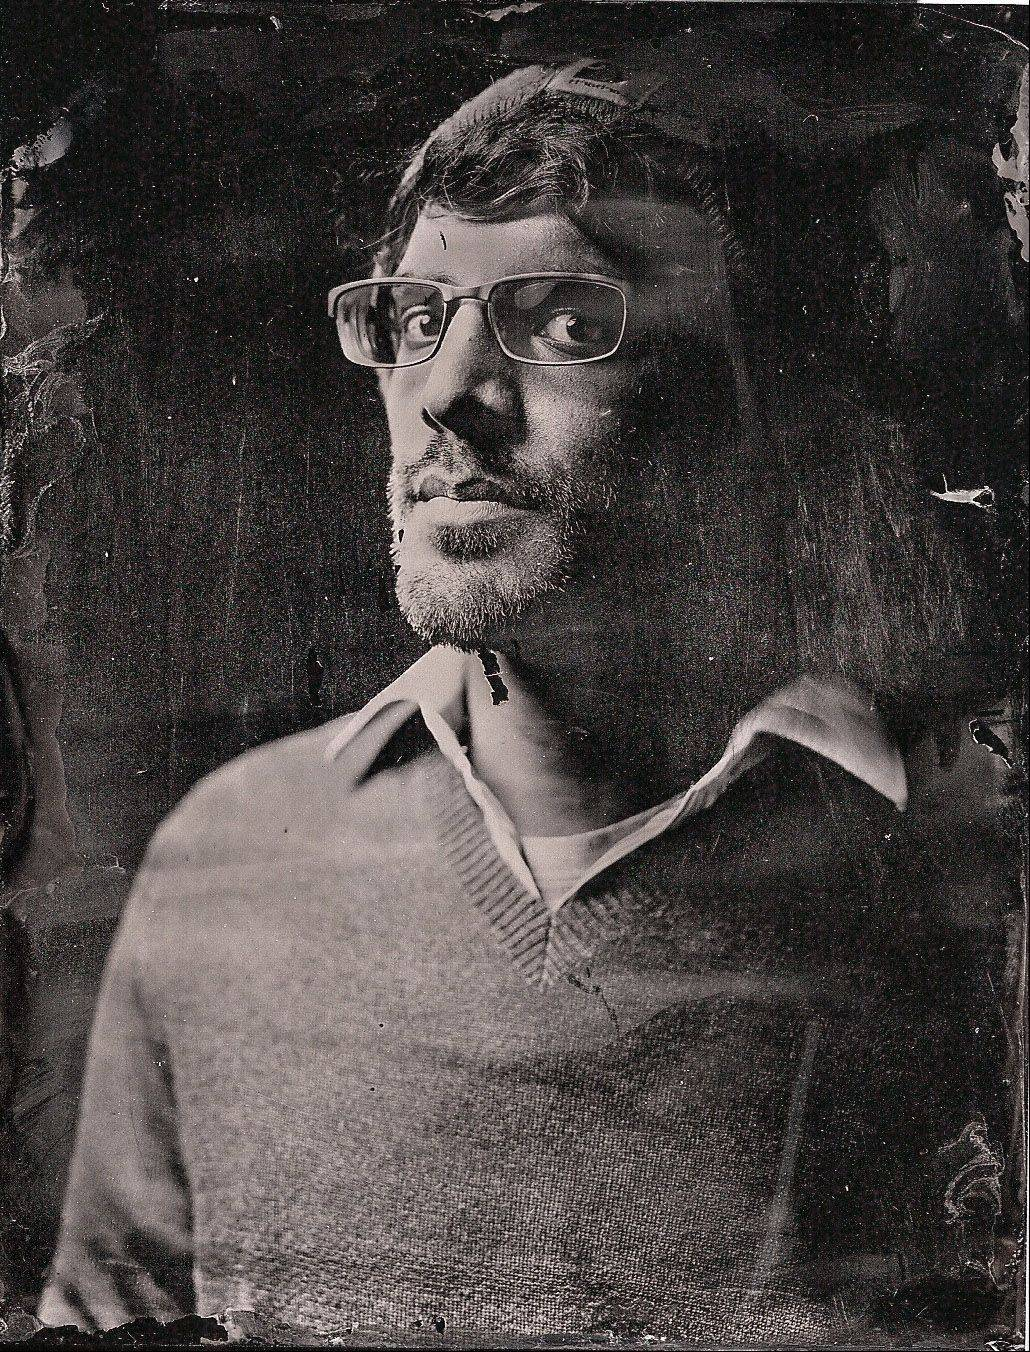 This photo of Vivek Jena of Naperville was taken at a wet plate workshop in Chicago. The photograph was taken with a 4x5 Cambo rail camera.